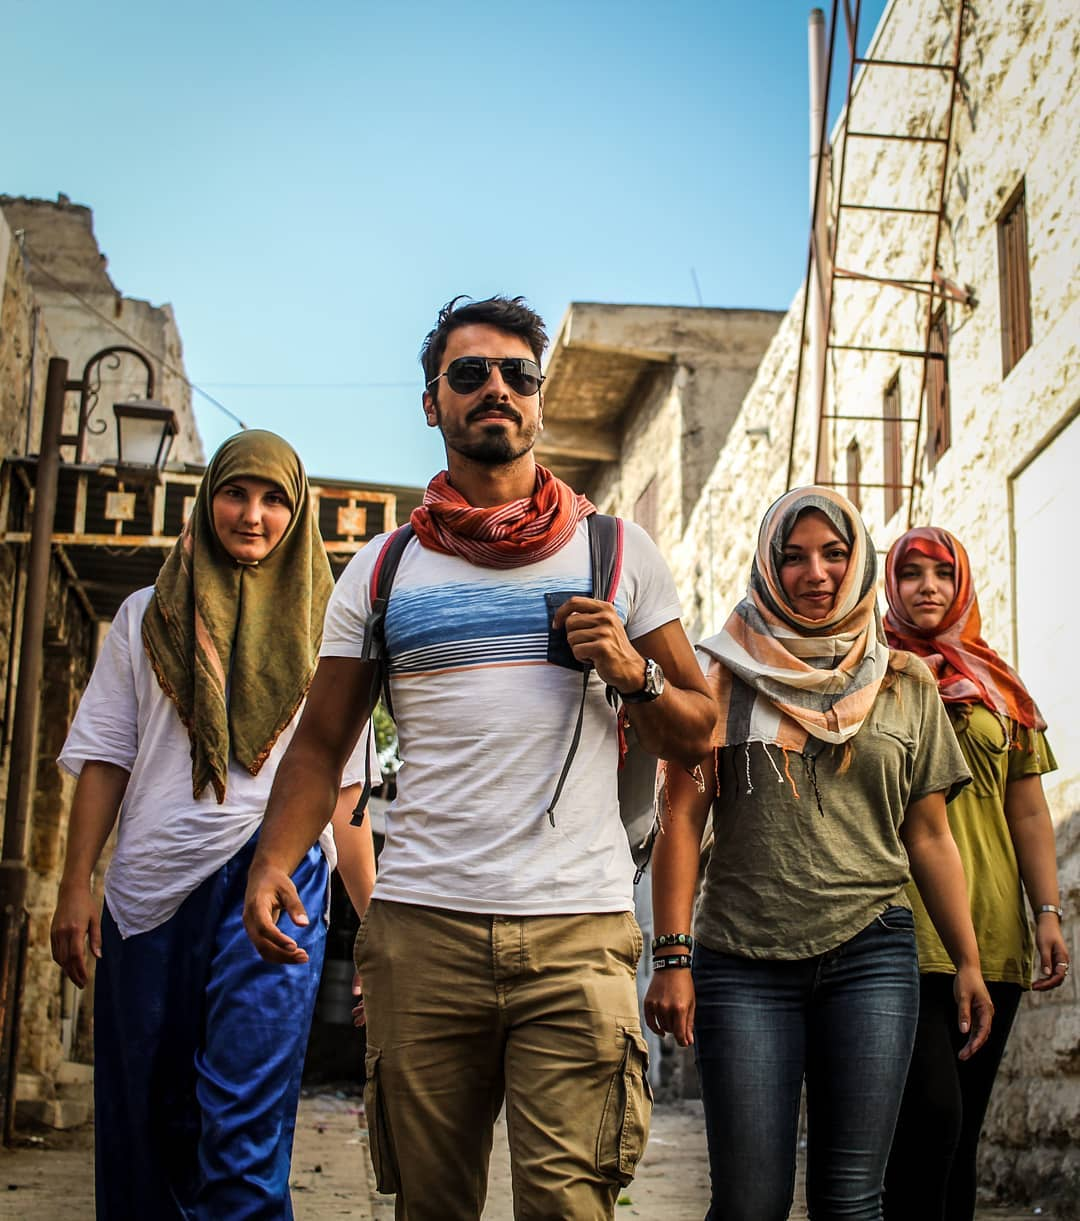 On the streets of Hebron, Palestine